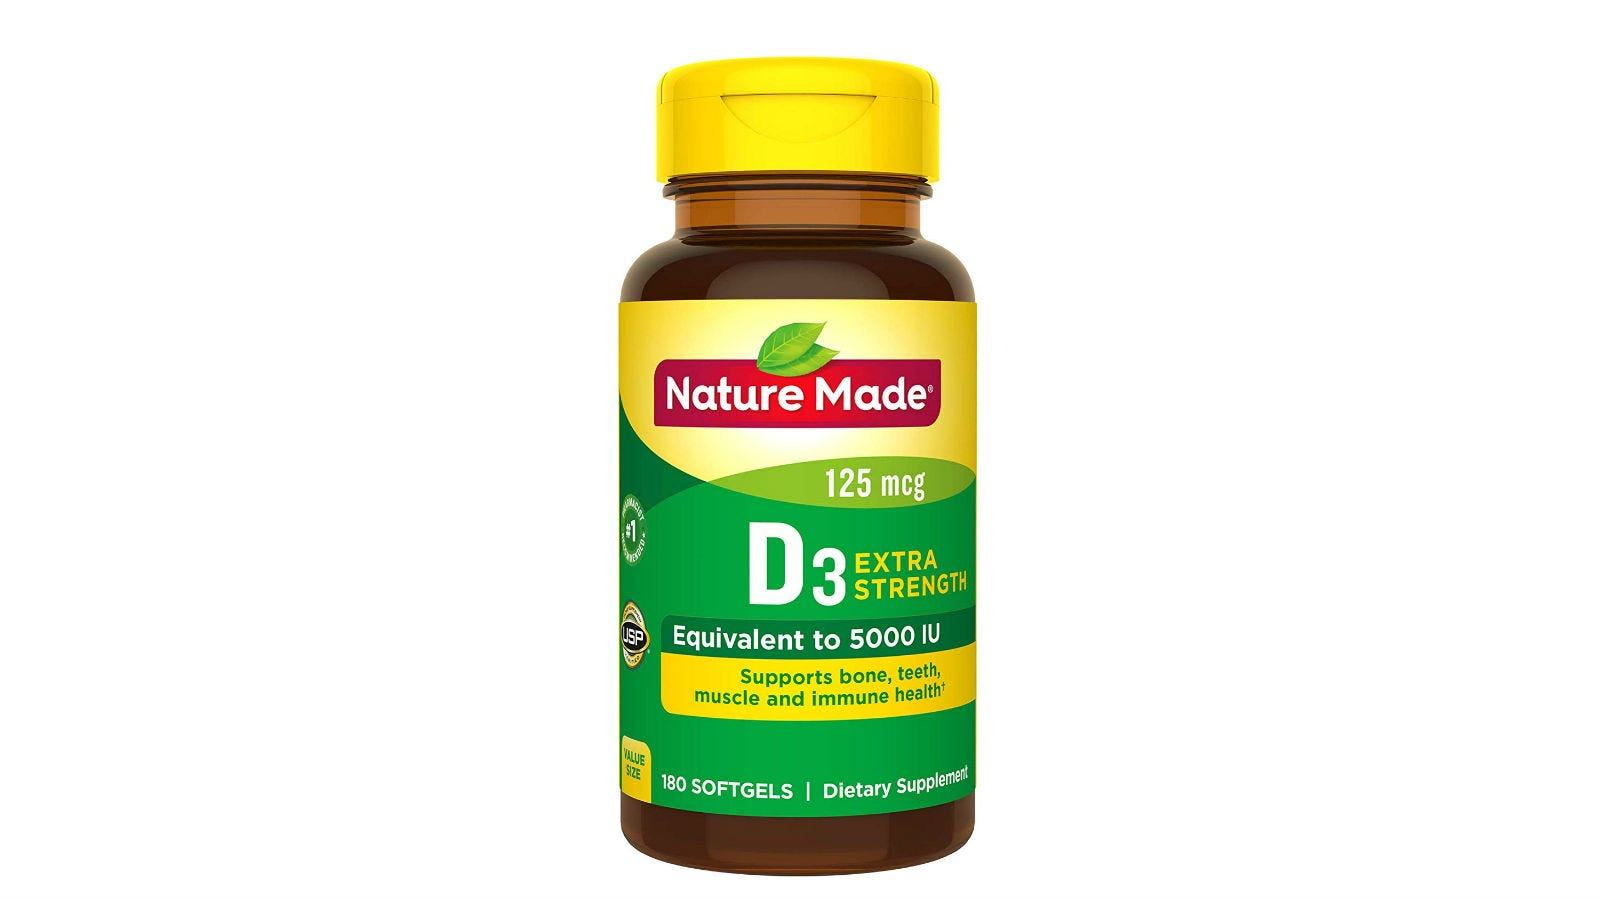 A bottle of Nature Made Extra Strength Vitamin D.